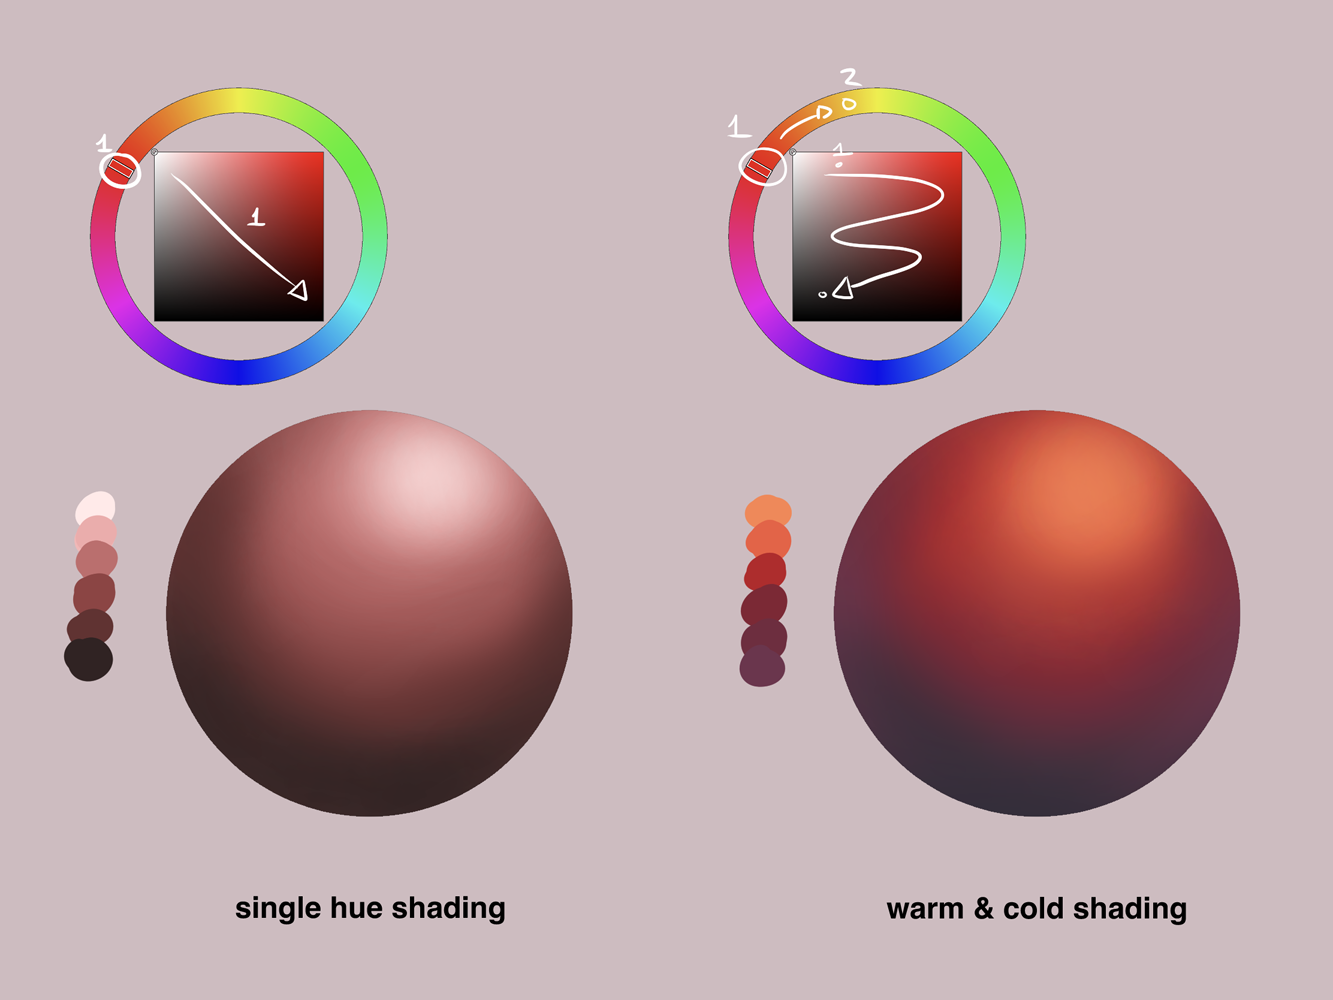 Shading Shortcuts For Webtoons Webtoons 1 By C Ipped104 Clip Studio Tips